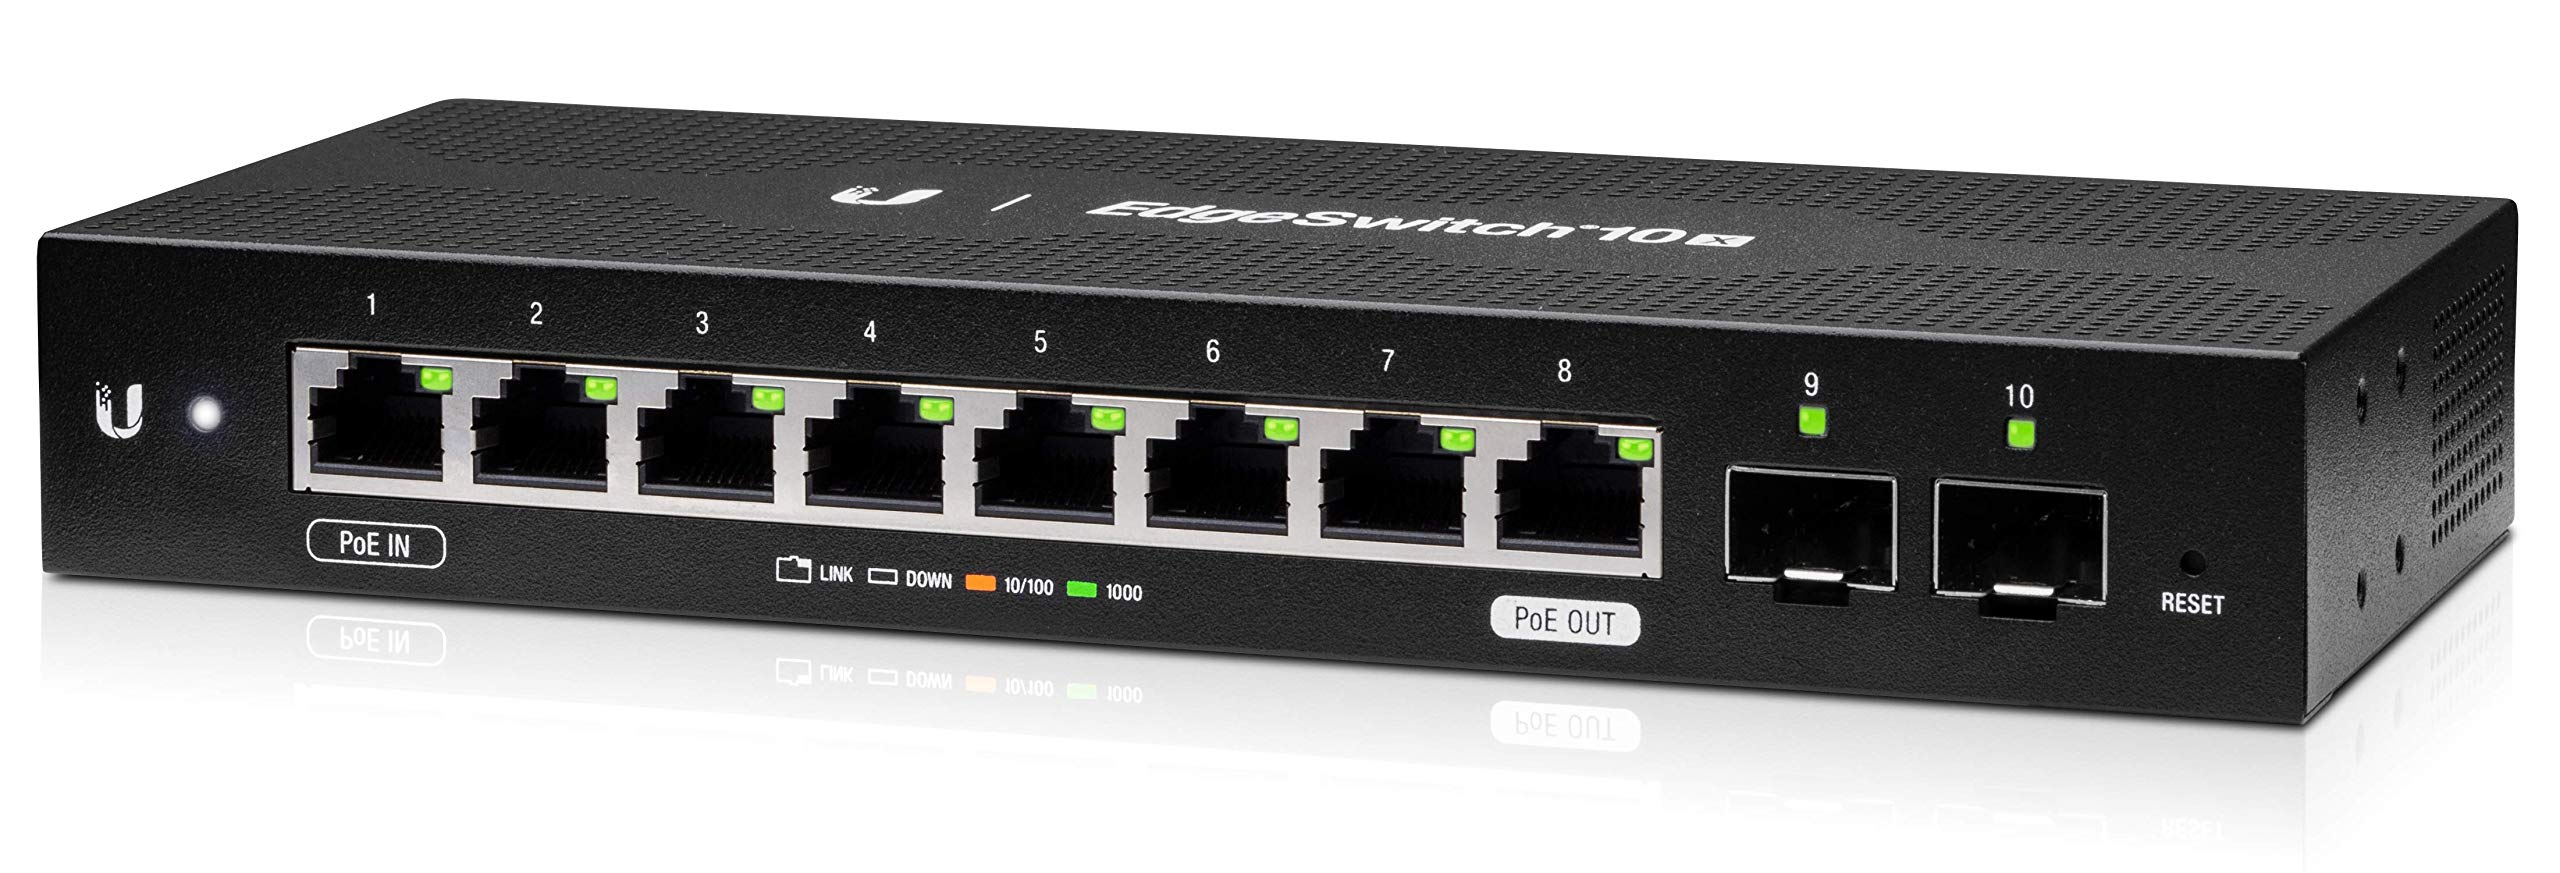 Ubiquiti EdgeSwitch 10X, 10-Port Gigabit Switch with Poe Passthrough (ES-10X) by Ubiquiti Networks